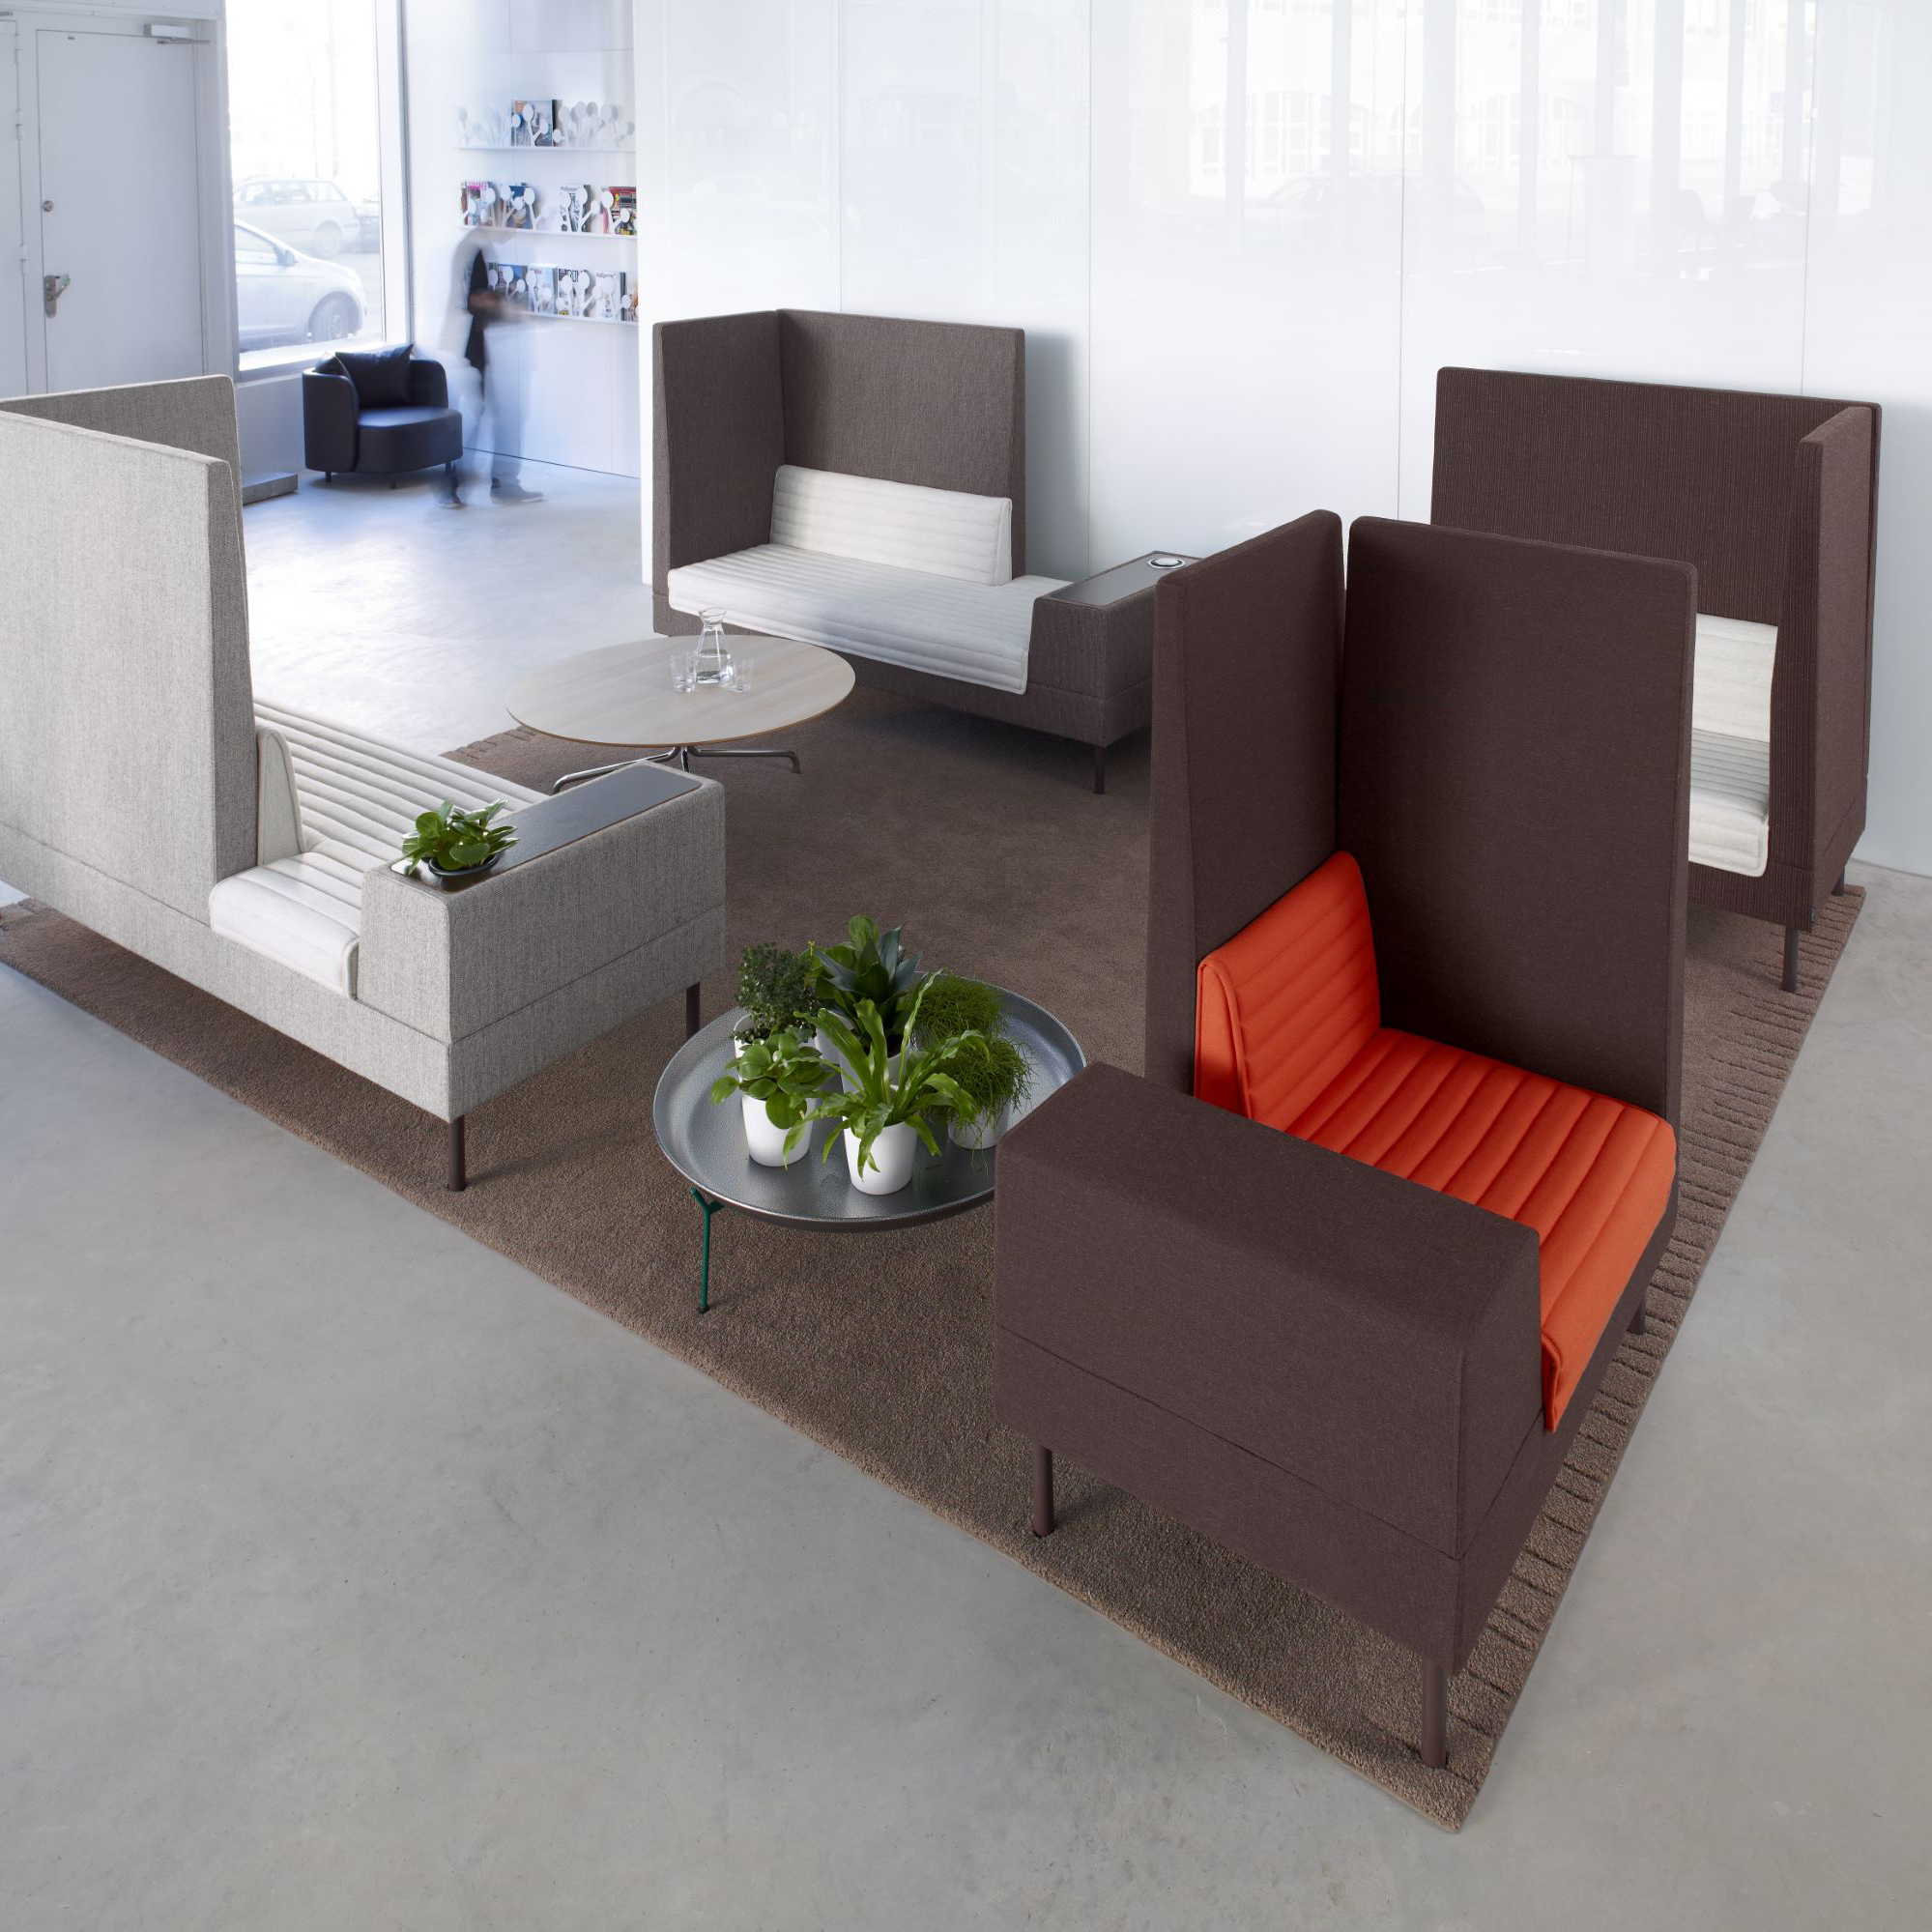 Small Room Chairs: Sofa And Room Divider